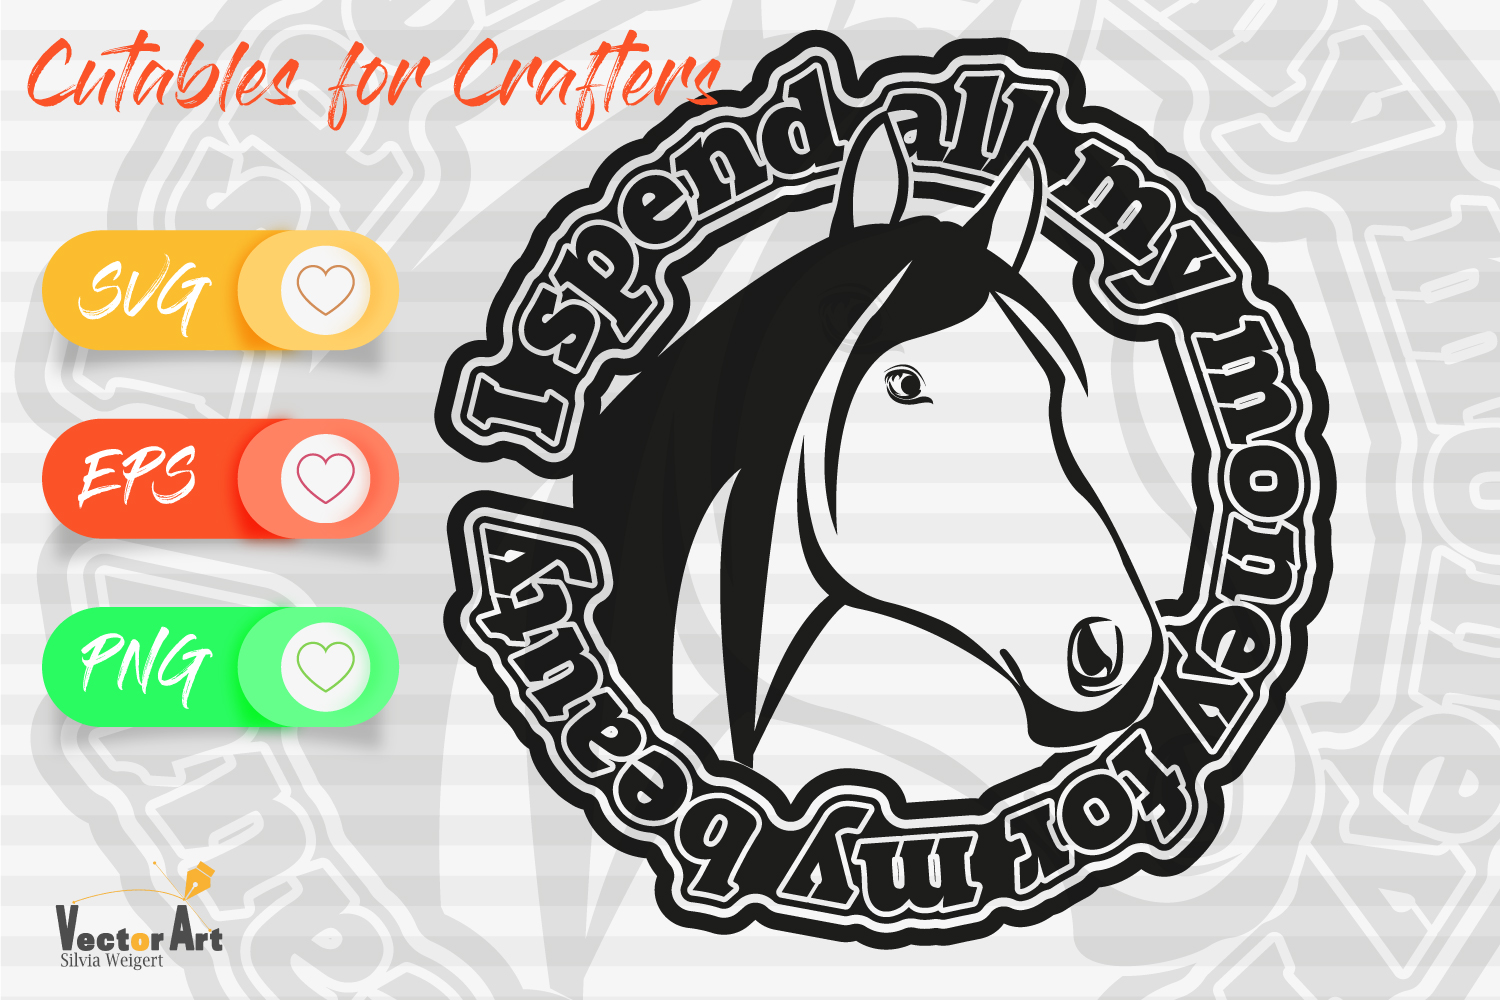 10x Horse Theme - Mini Bundle - Cut files for Crafters example image 3